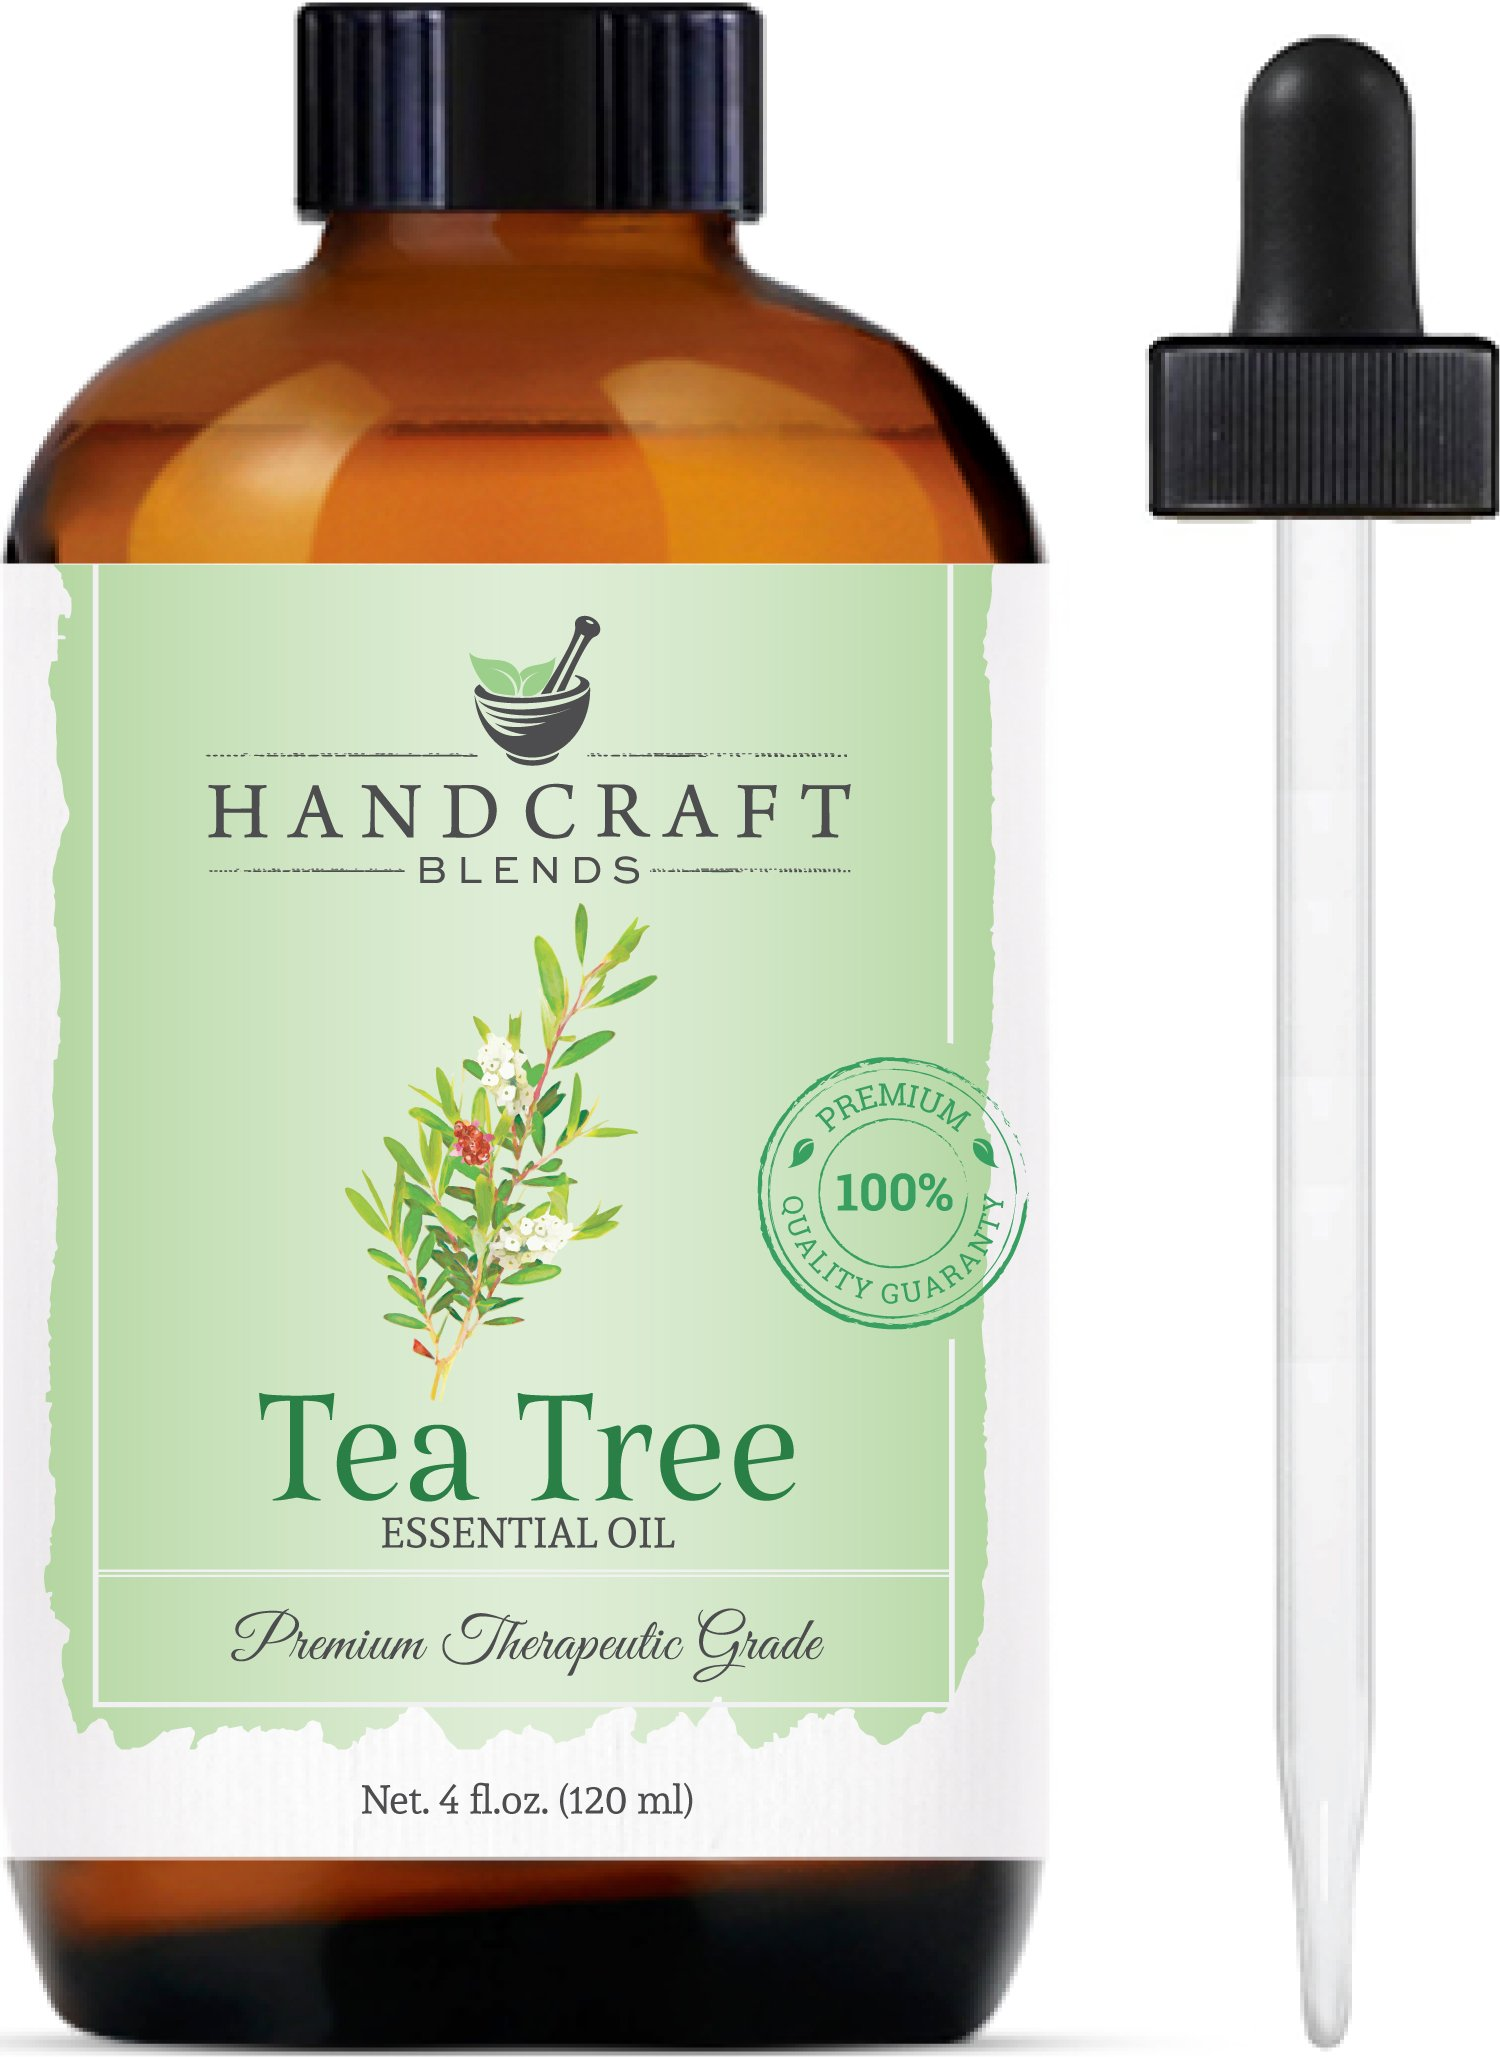 Handcraft Tea Tree Essential Oil - Huge 4 OZ - 100% Pure & Natural – Premium Therapeutic Grade with Premium Glass Dropper by Handcraft Blends (Image #6)